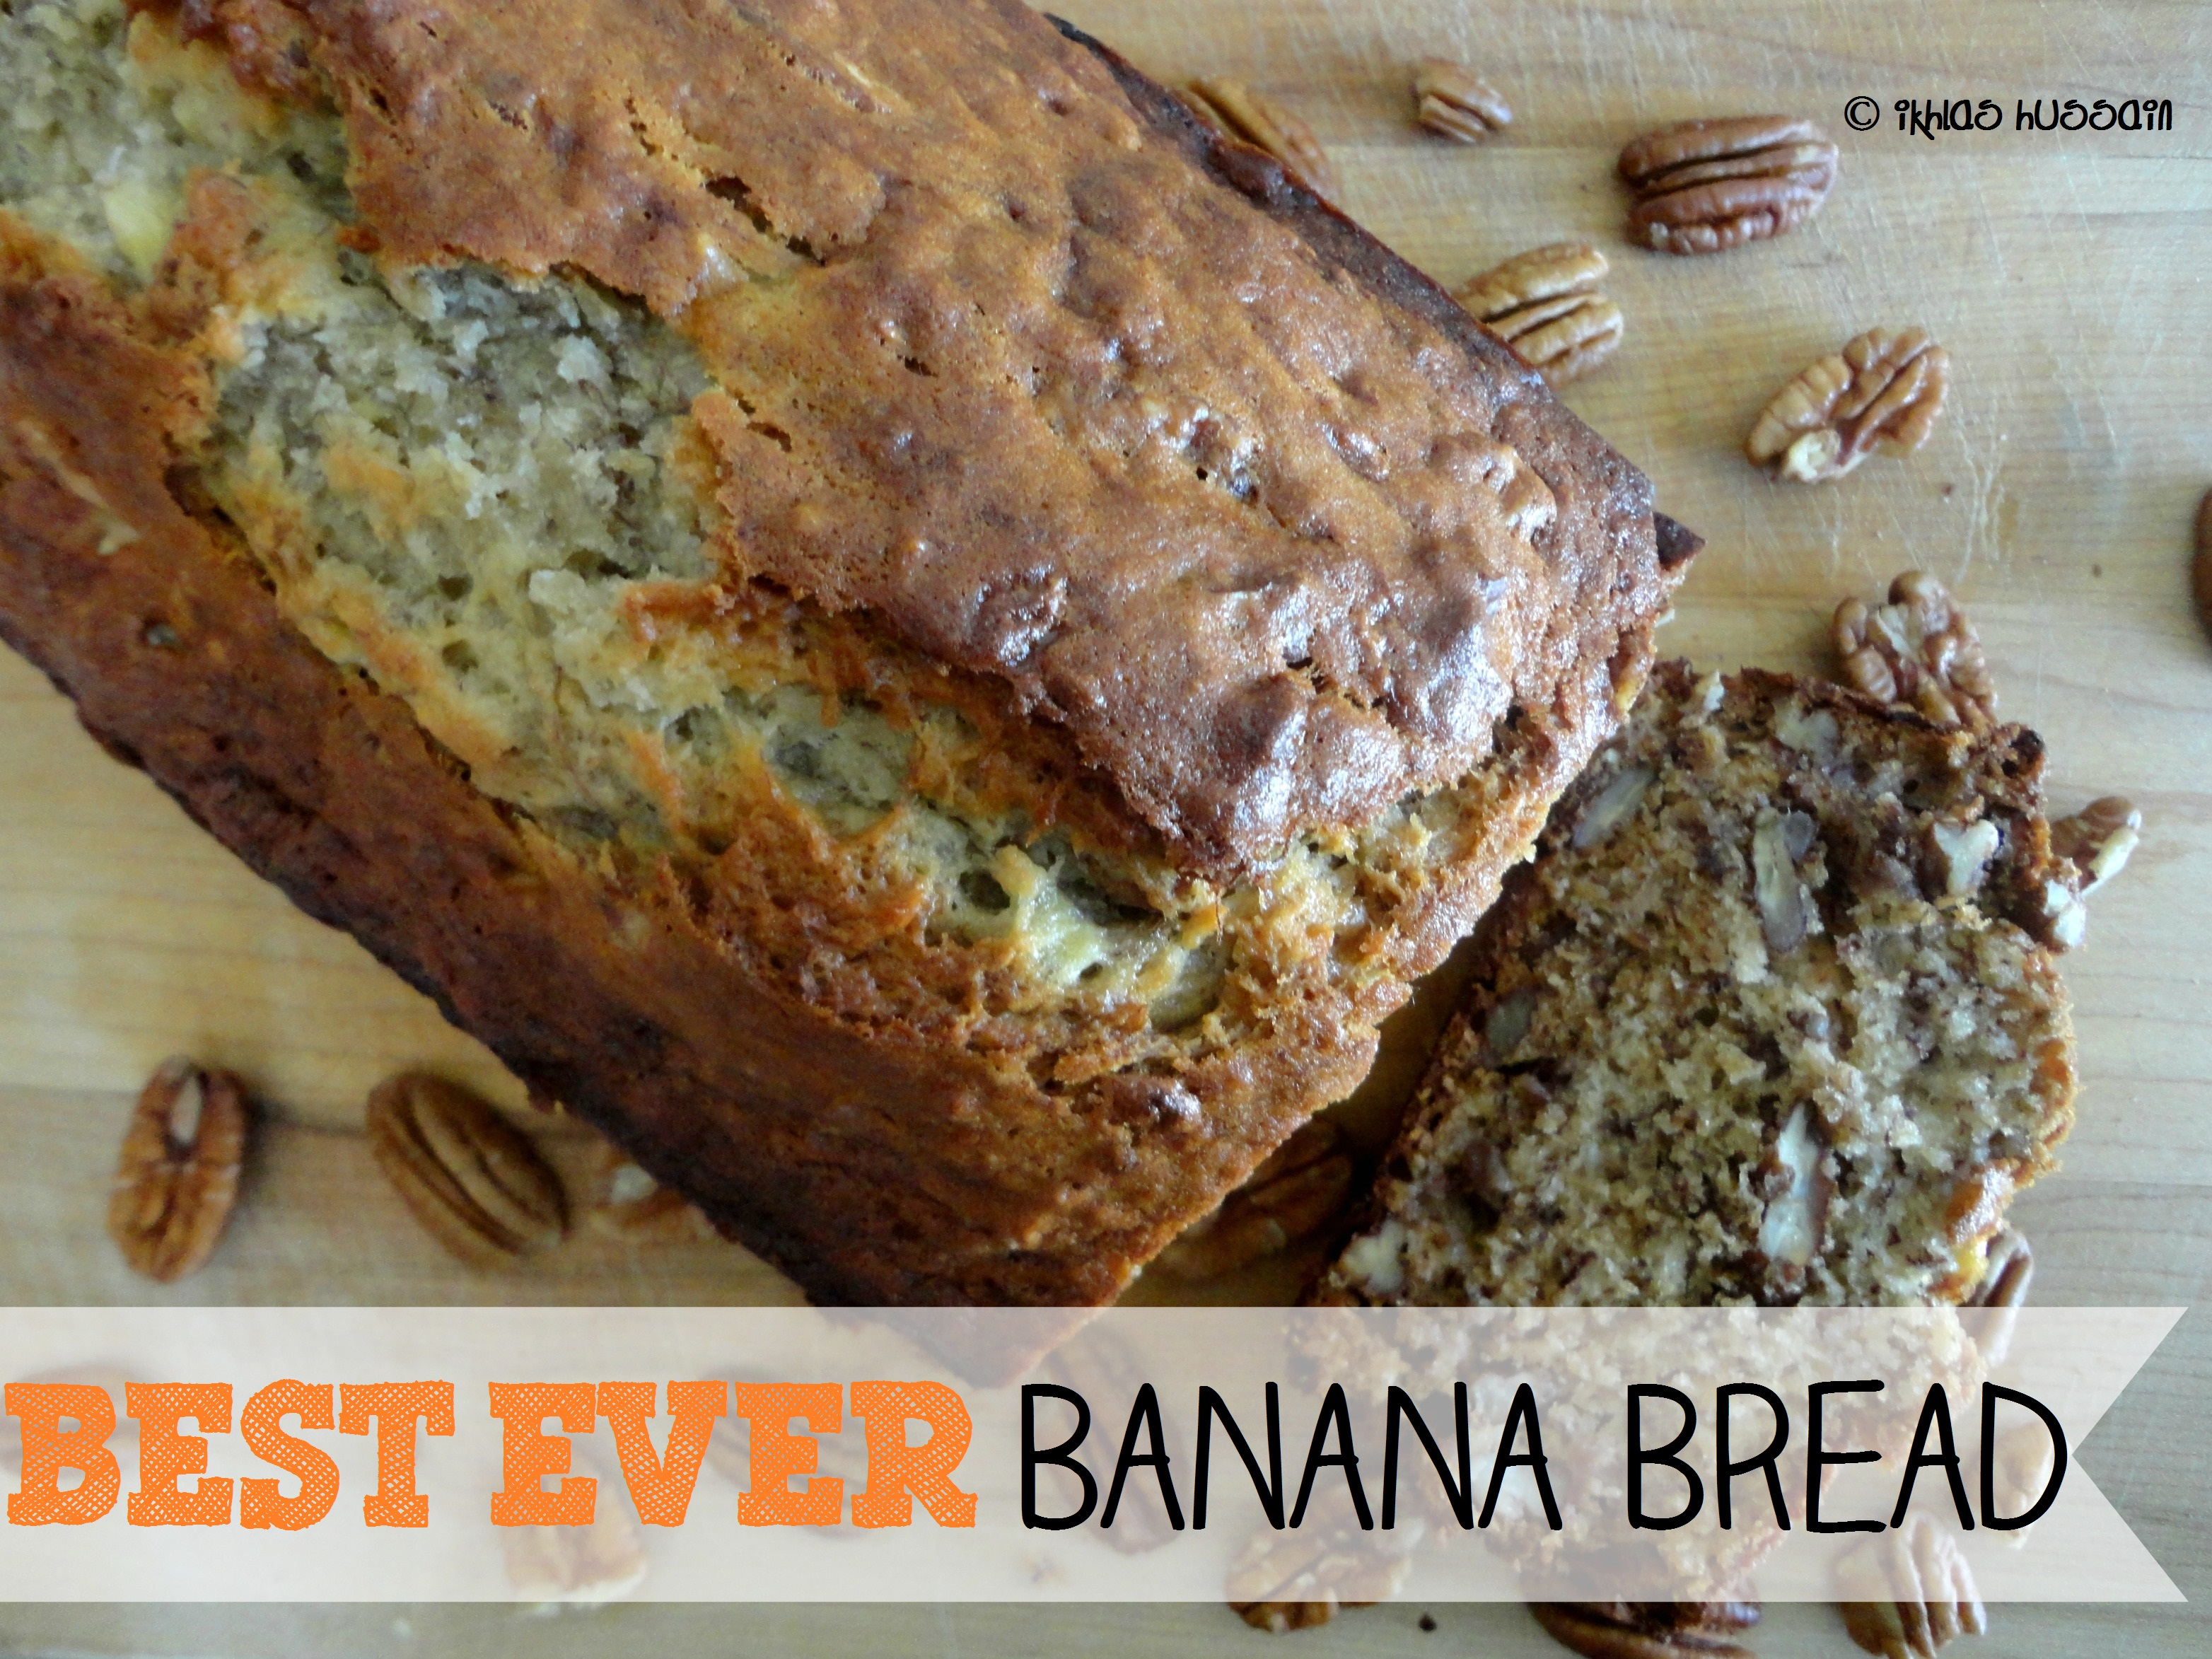 Recipe: Best Ever Banana Bread - The Whimsical Whims of Ikhlas Hussain